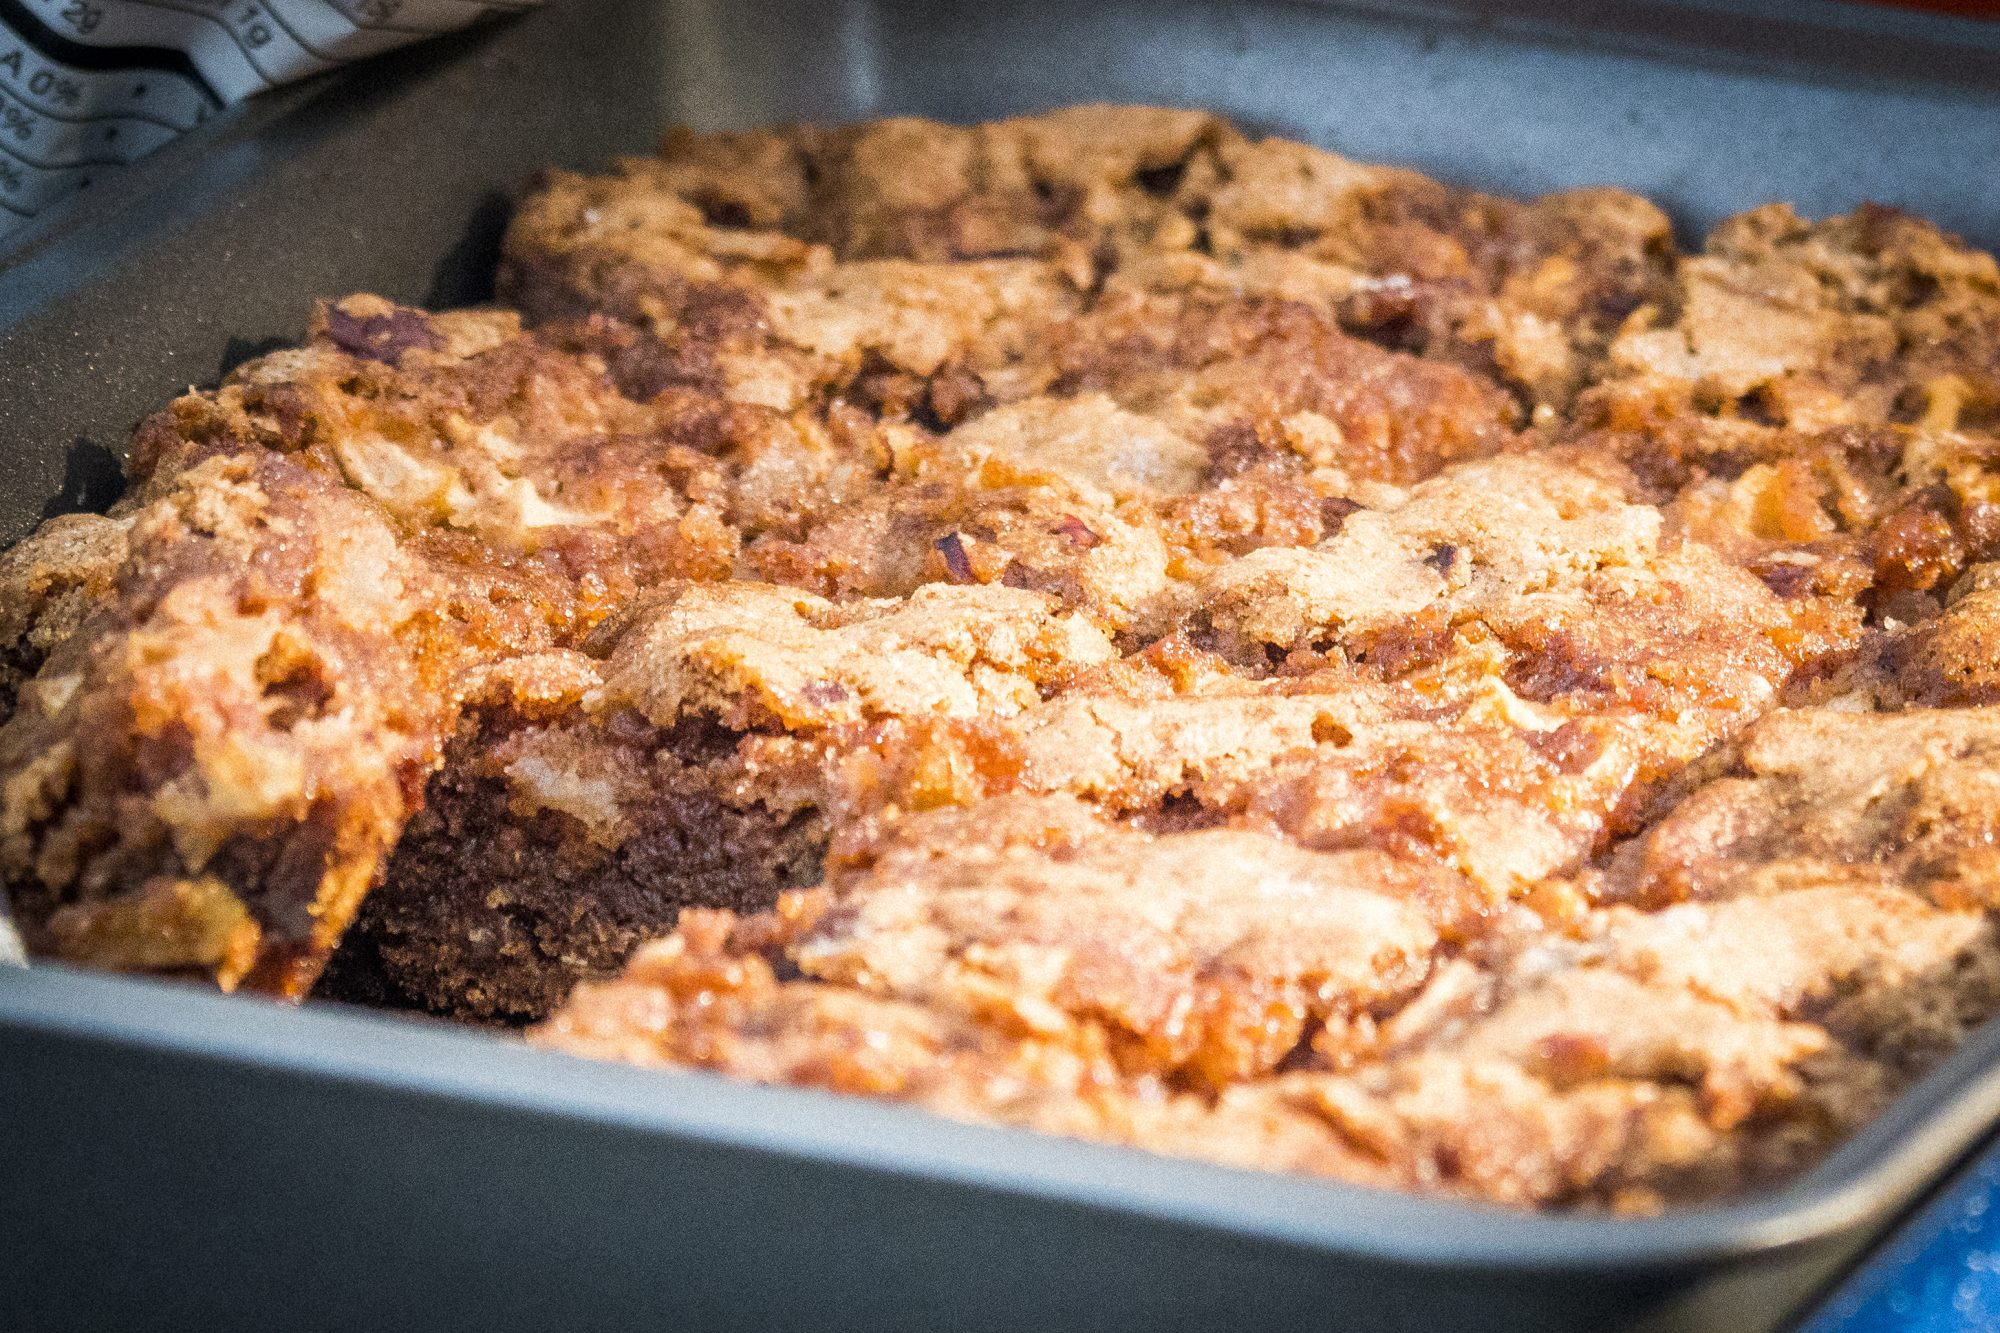 The Best Apple Cake Andrew Zimmern Has Ever Tasted